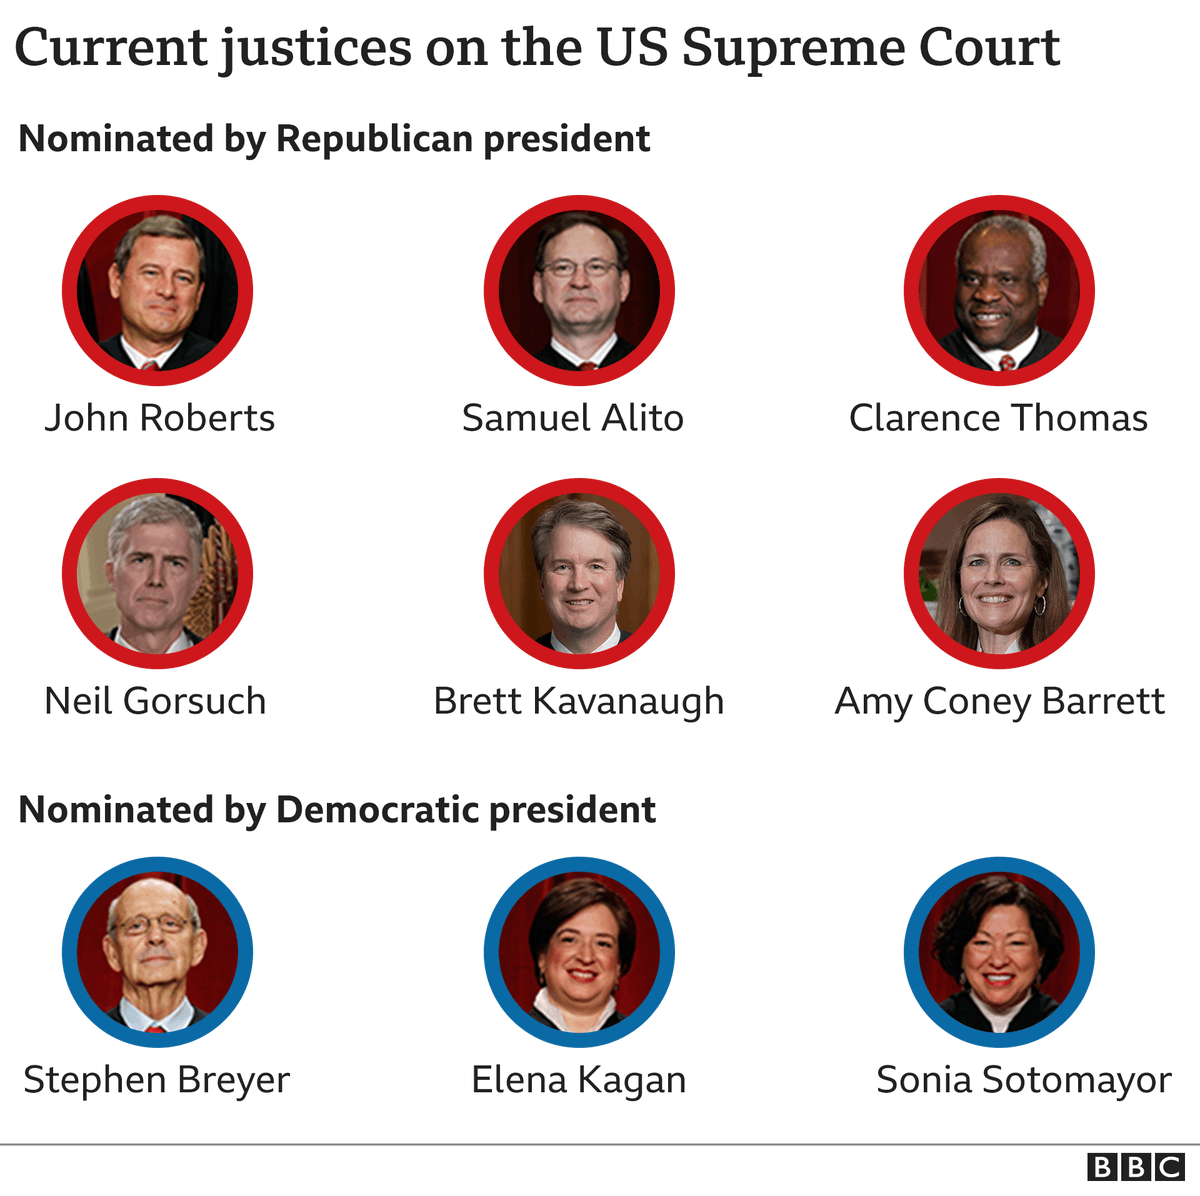 🇺🇸🇺🇸🇺🇸🇺🇸🇺🇸🇺🇸🇺🇸 #Move2ExpandSCOTUS Edition  SEDITION & High Crimes today  YEP, Lifetime #SCOTUS appointments r a SERIOUS PROBLEM, ESPECIALLY WHEN A #TRAITOR is picking... The Most EGREGIOUS:  -#HandMaidenComey -#SexOffenderKavanaugh -#TRAITORClarenceThomas   #DiluteSCOTUSnow!!!